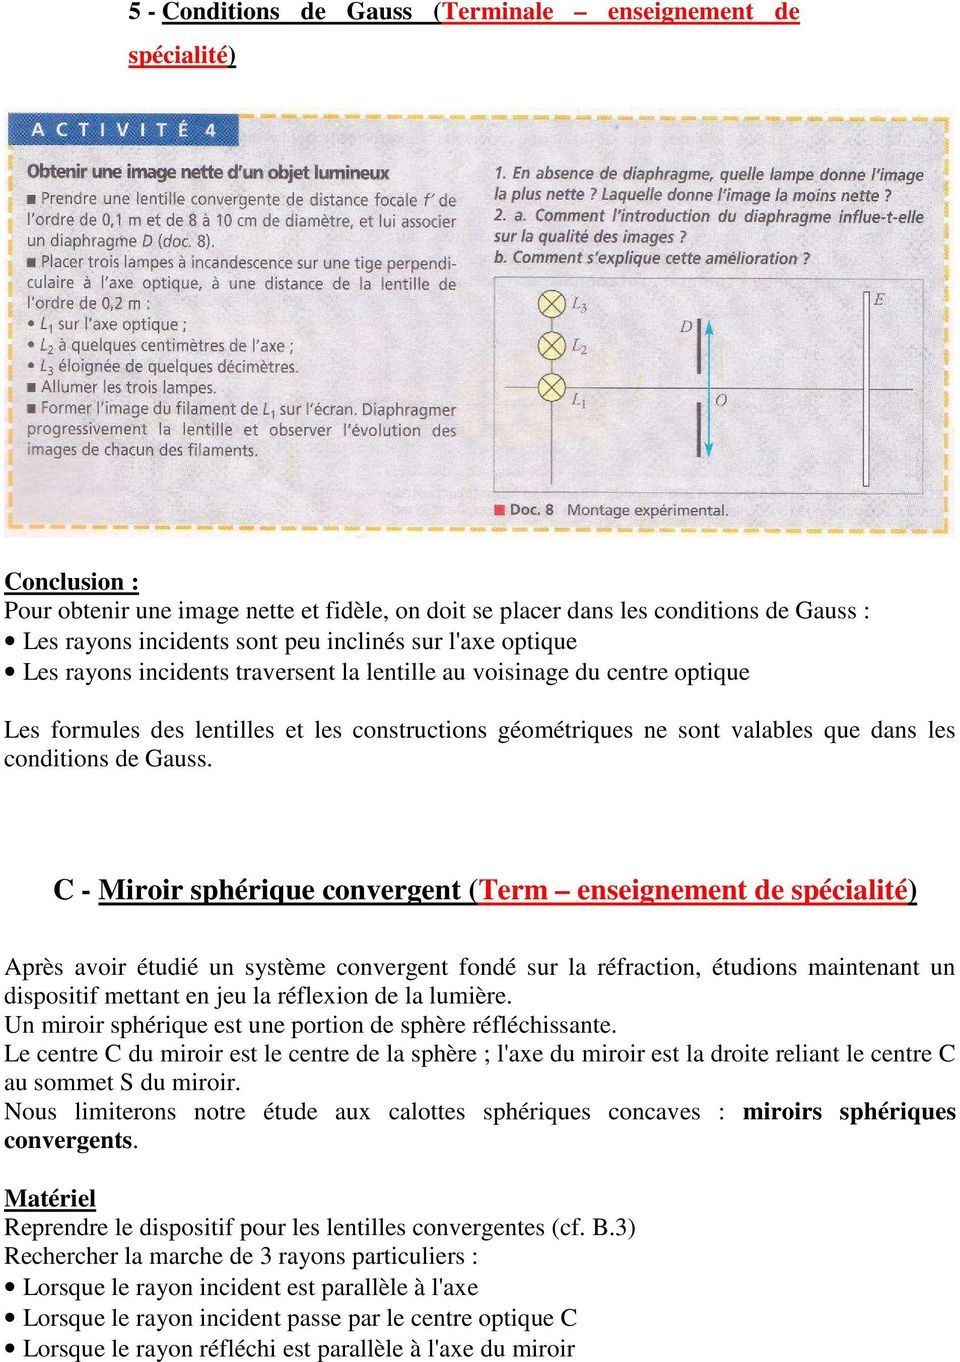 conditions de Gauss.